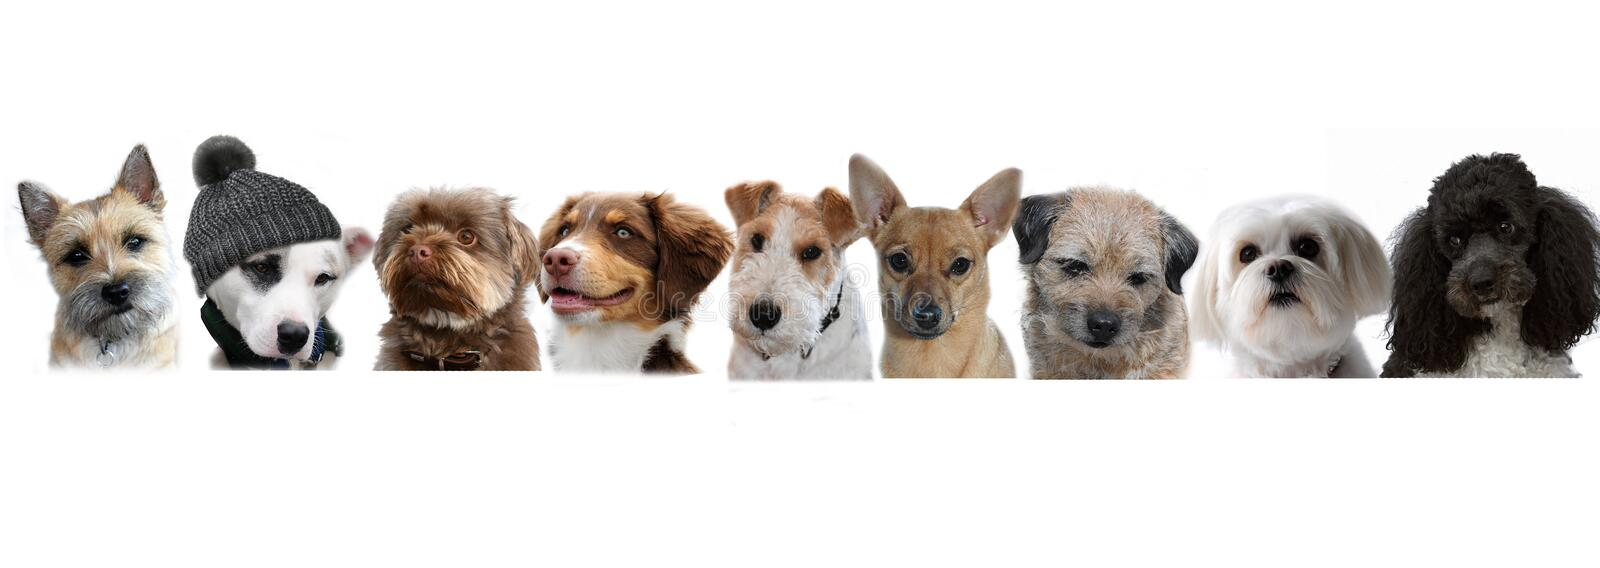 Group of dogs. Portraits of dogs in a row on white background, one is something special, he wears a hat